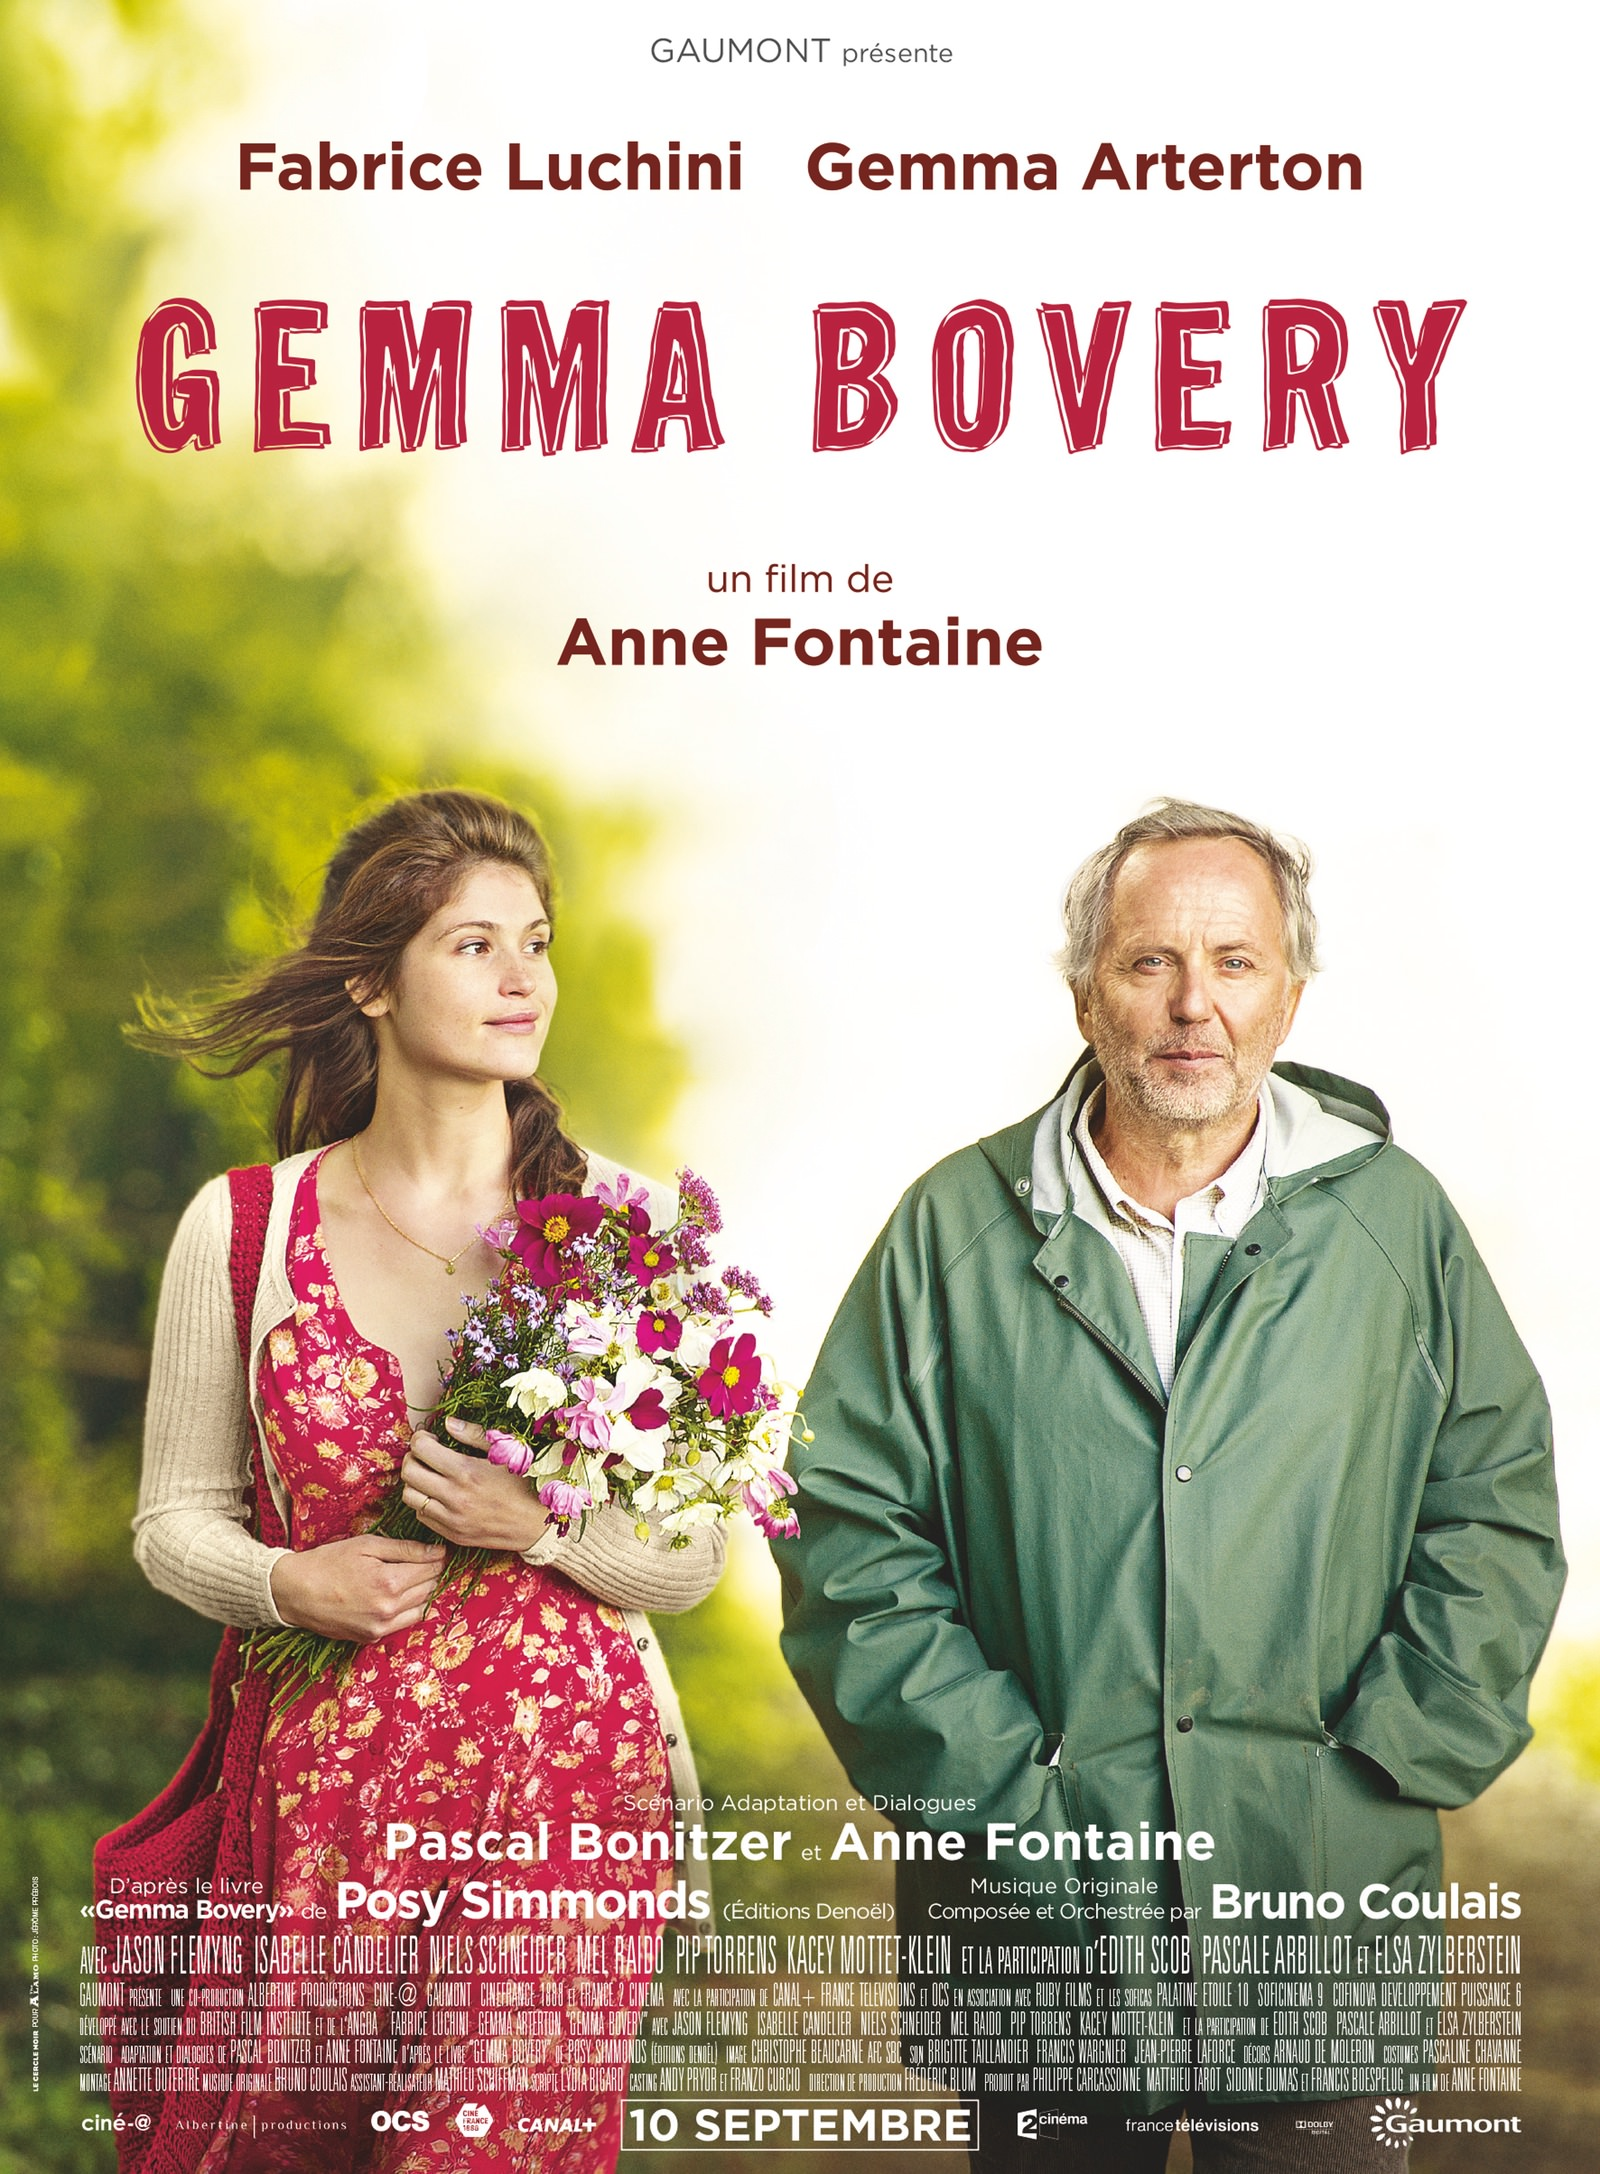 Gemma bovery fontaine